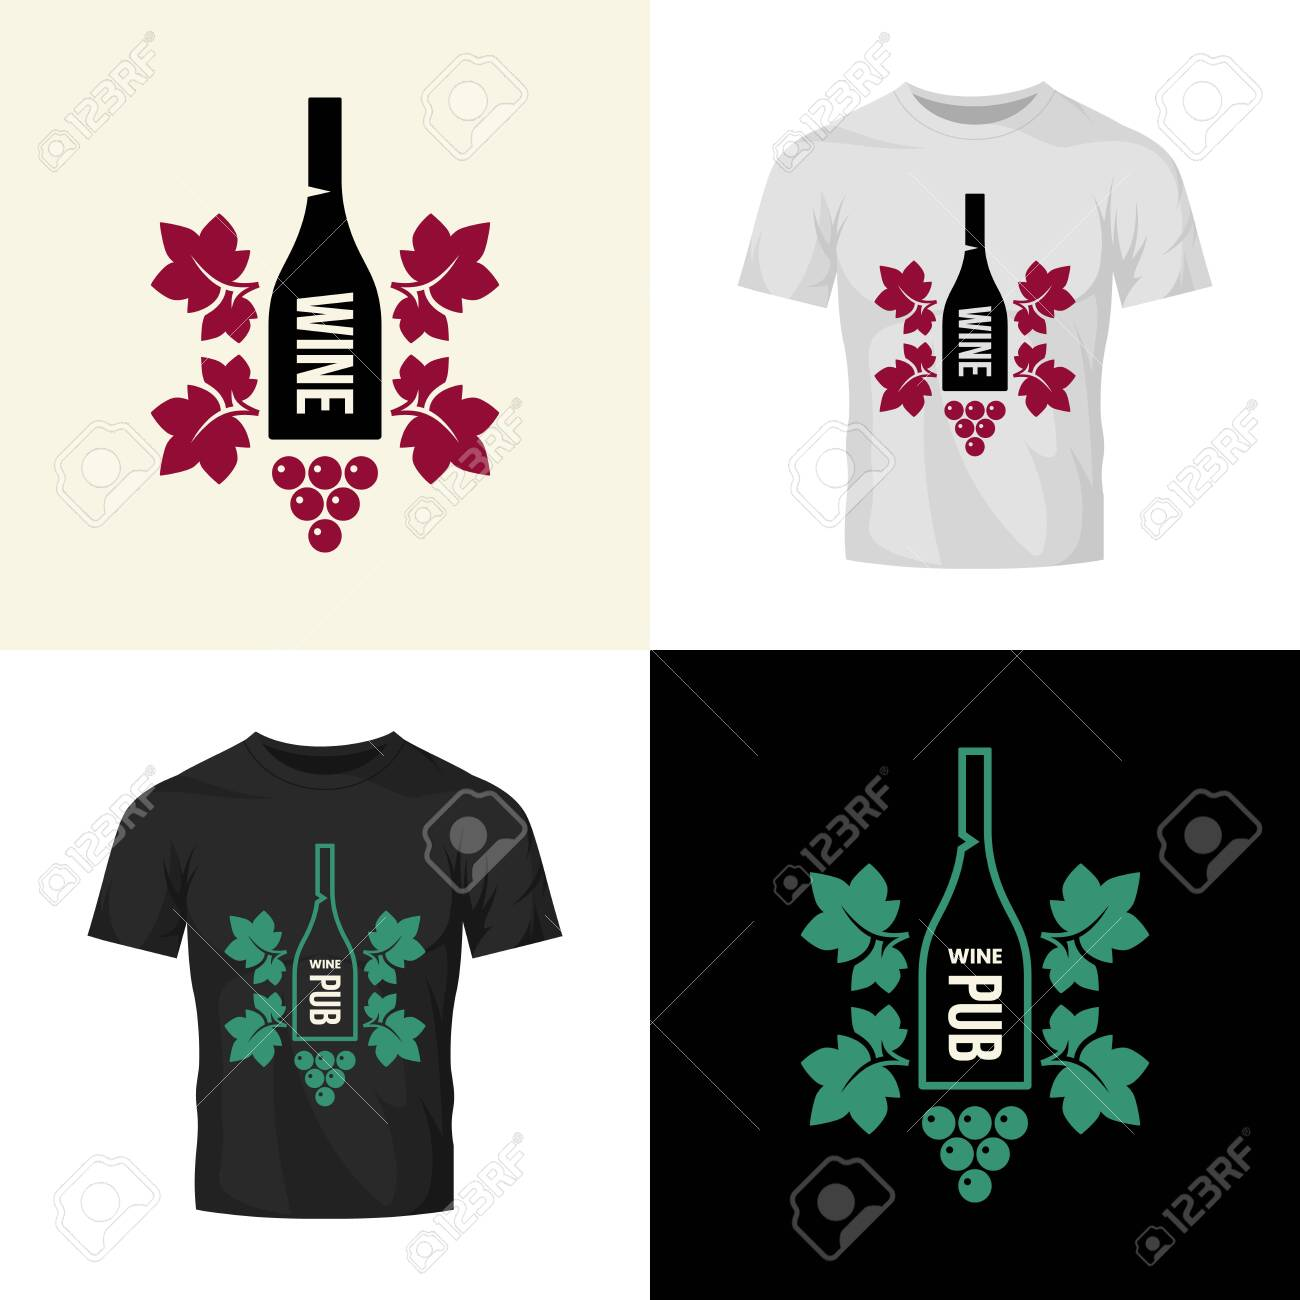 Modern wine vector isolated logo collection for tavern, restaurant, house, shop, store, club and cellar. Premium quality vinery logotype illustration set. Fashion brand badge design template bundle. - 120438777